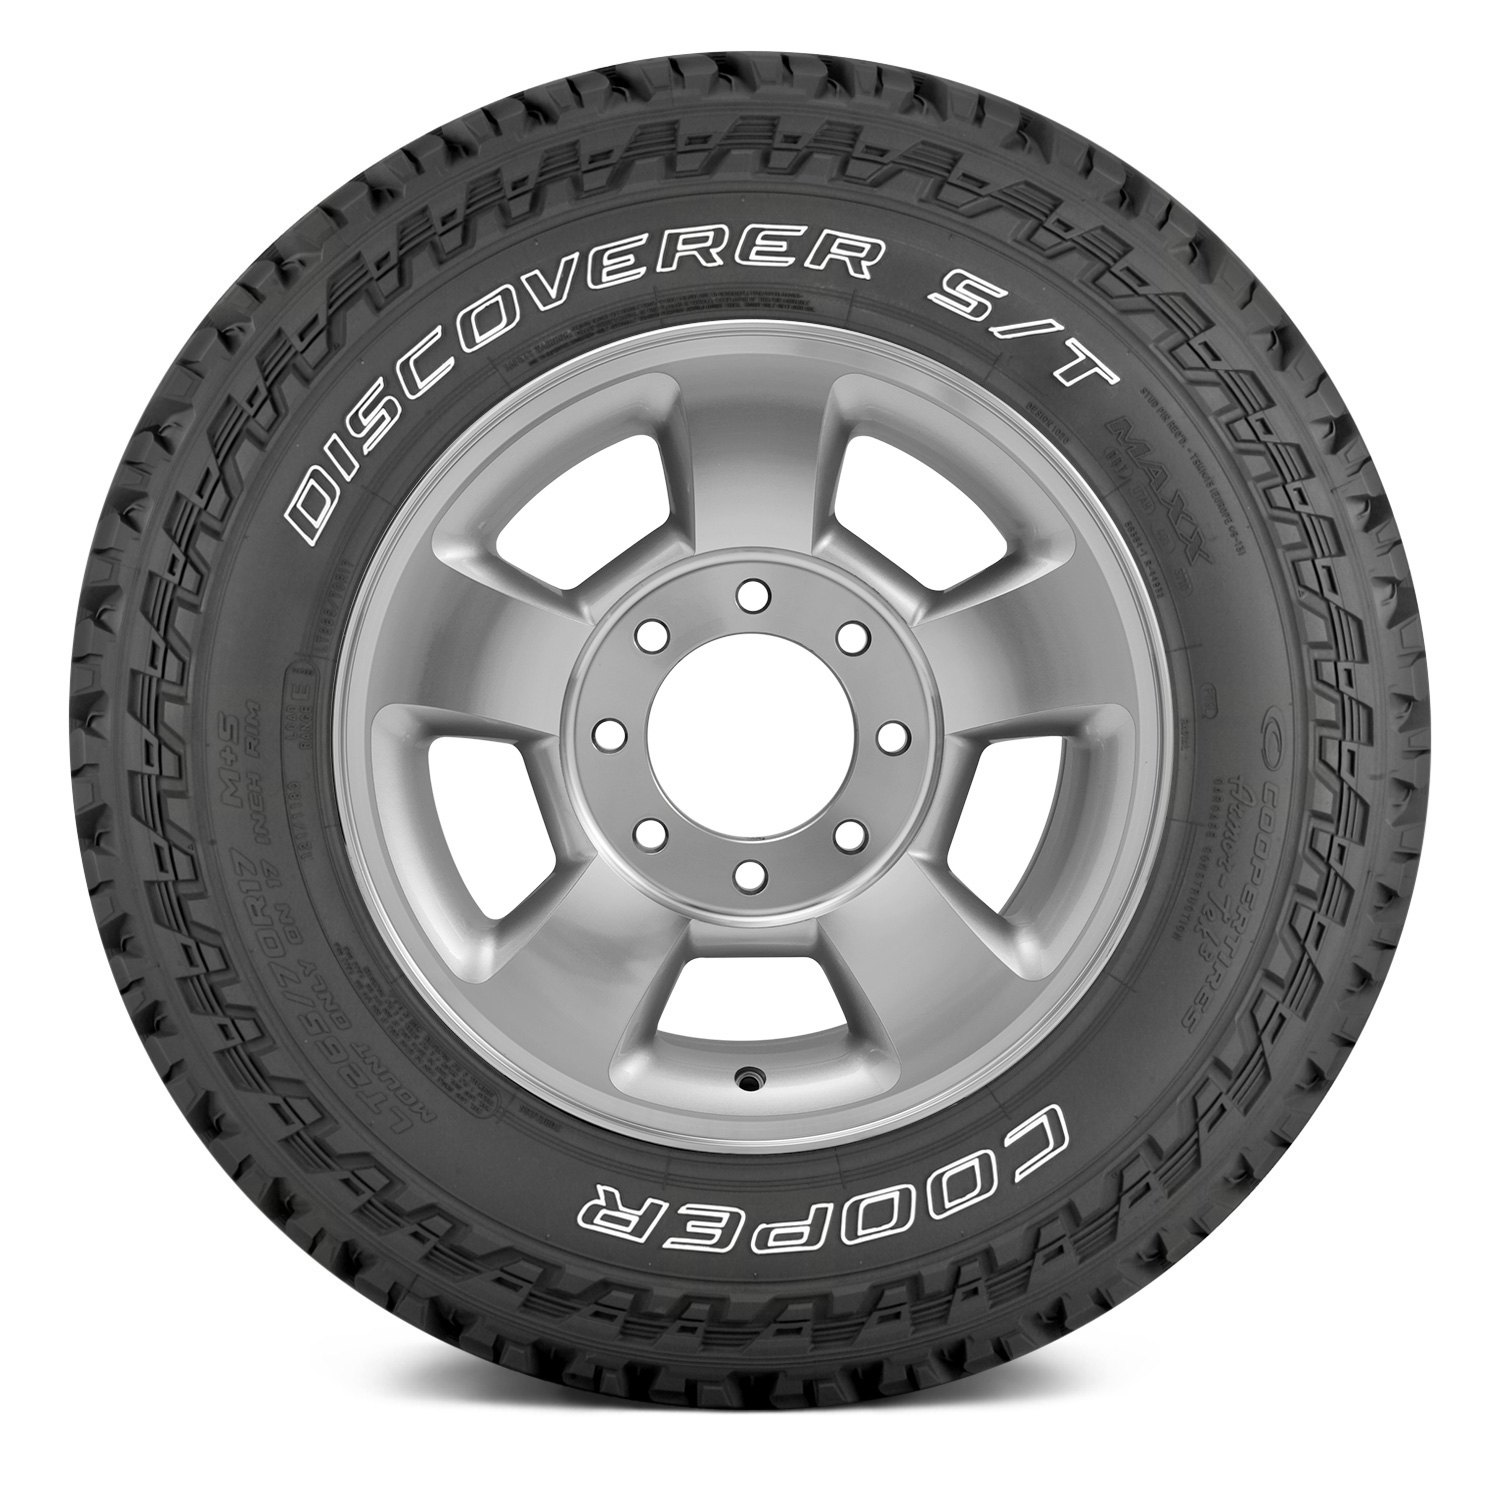 Cooper Tires Discoverer S/T Maxx - LT255/75R17 111/108Q 6 Ply